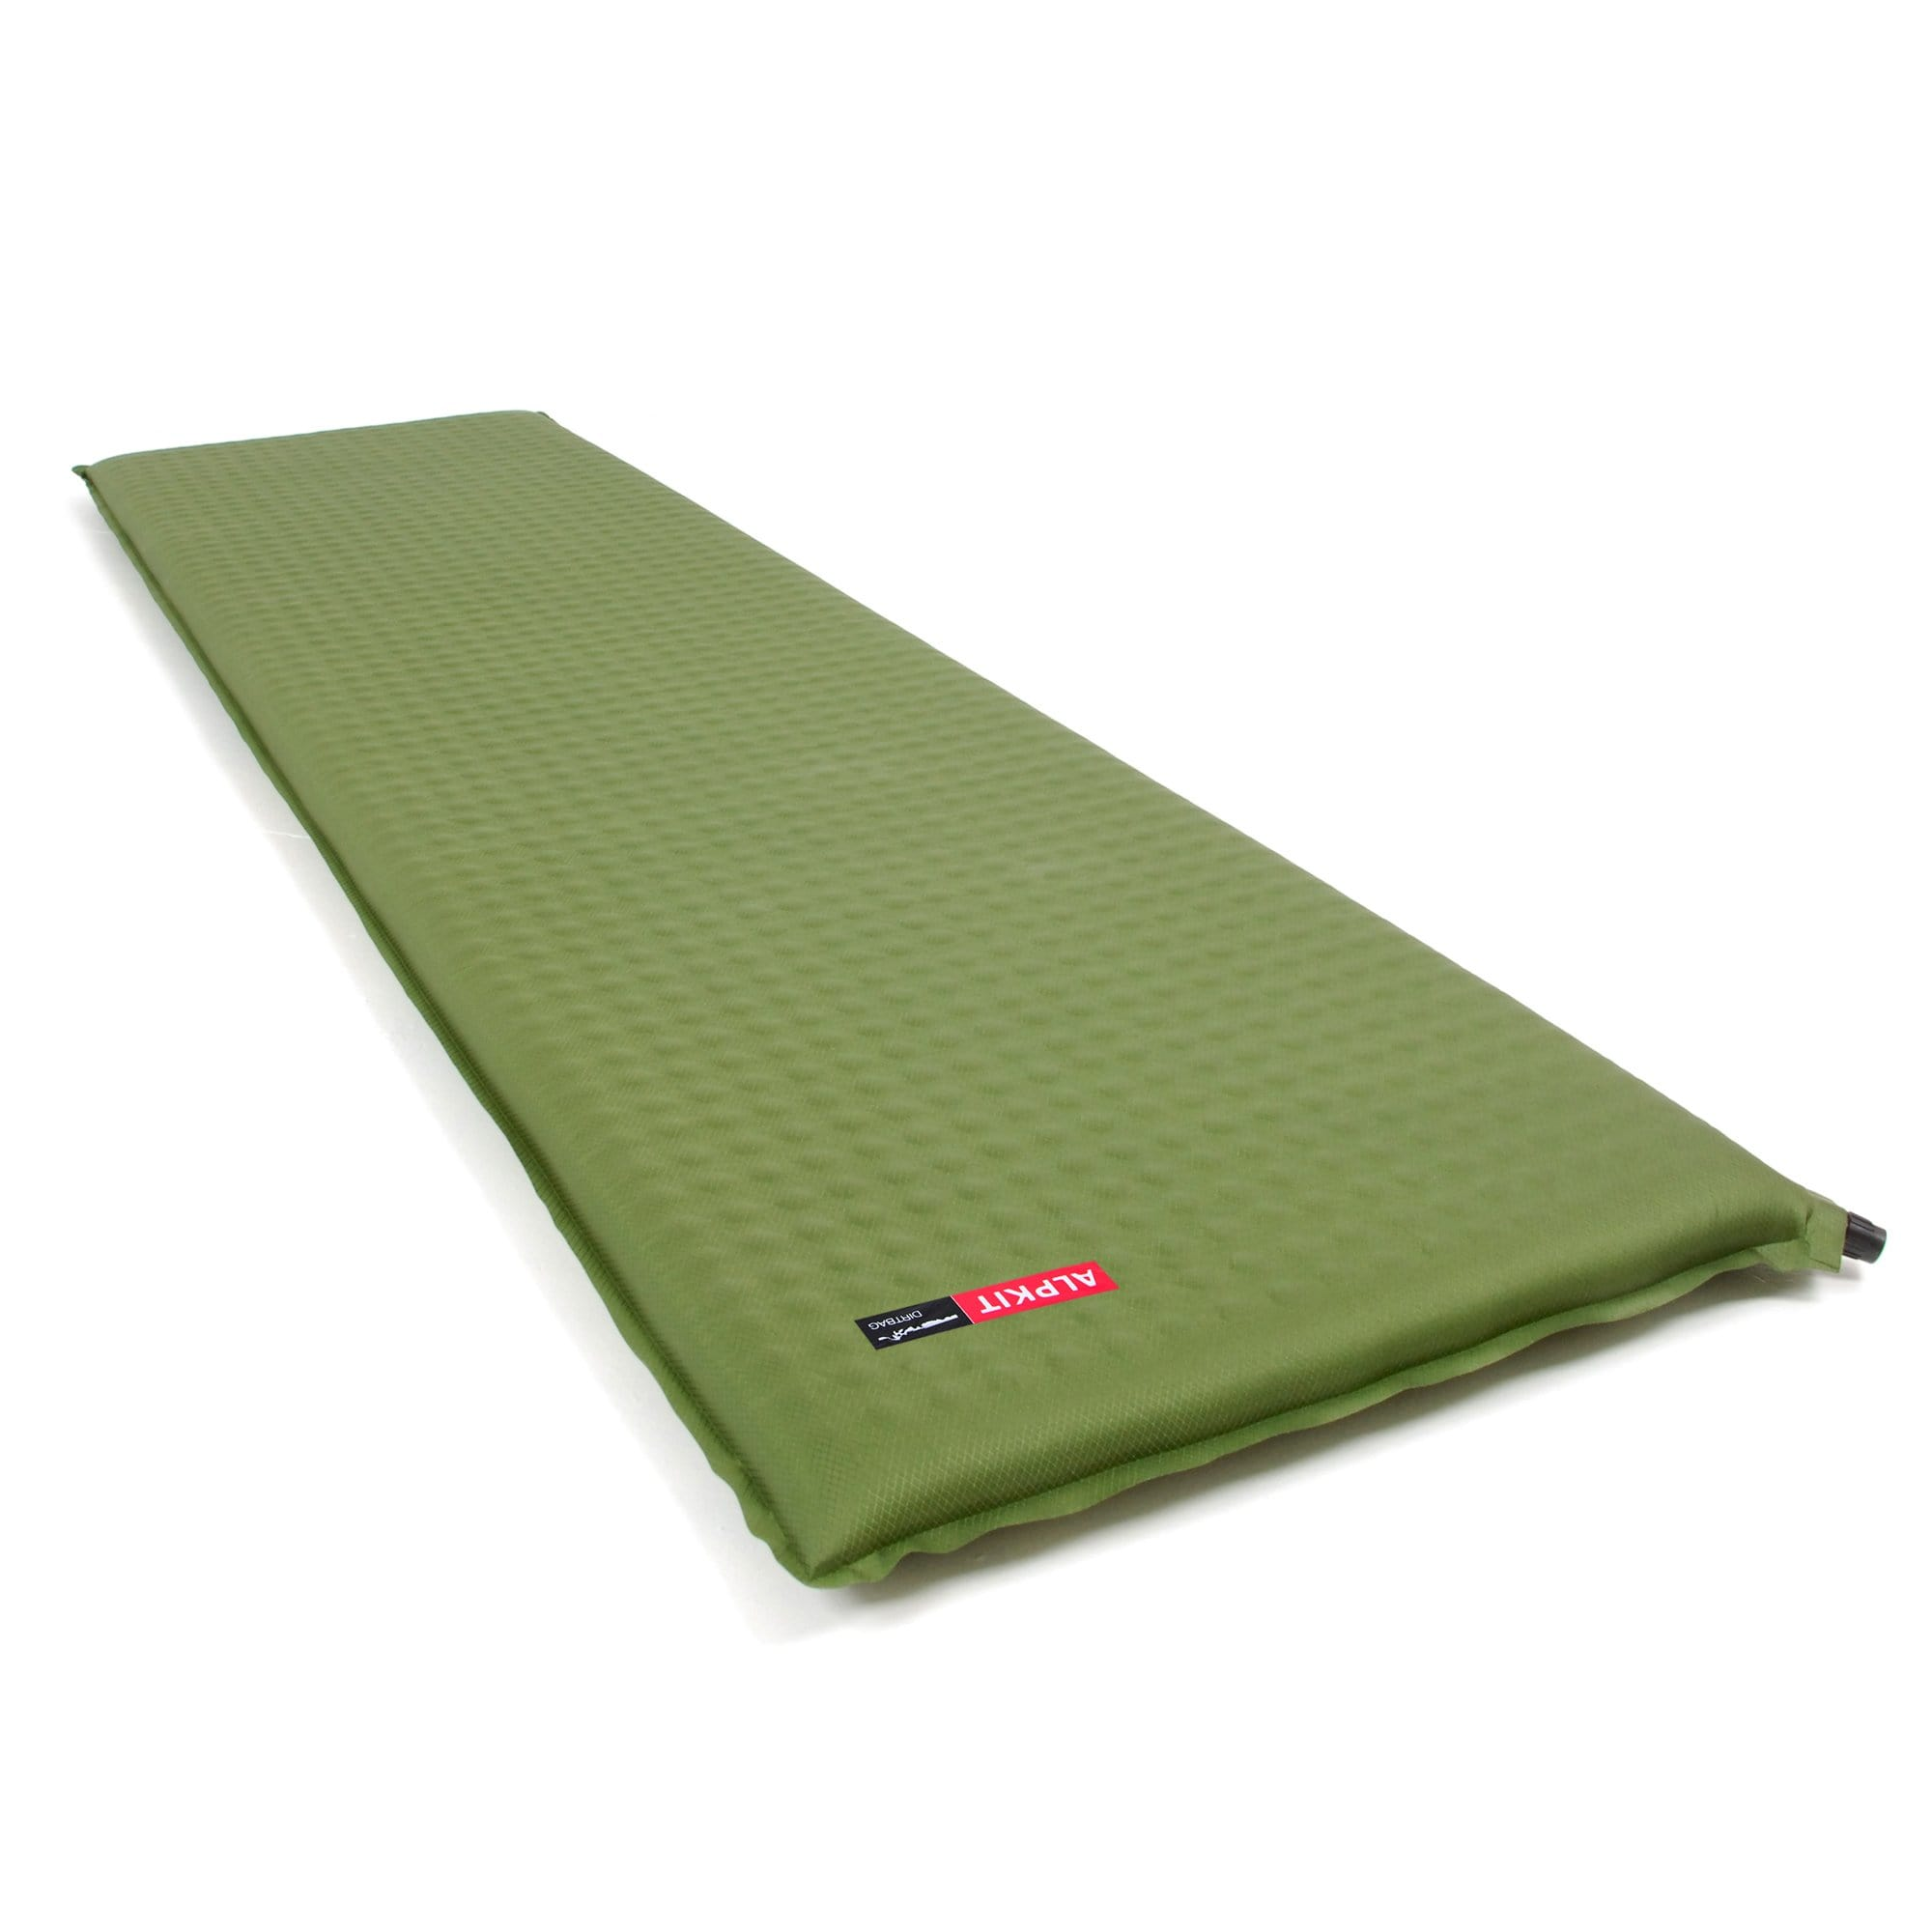 A Dirtbag self-inflating sleeping mat fully inflated